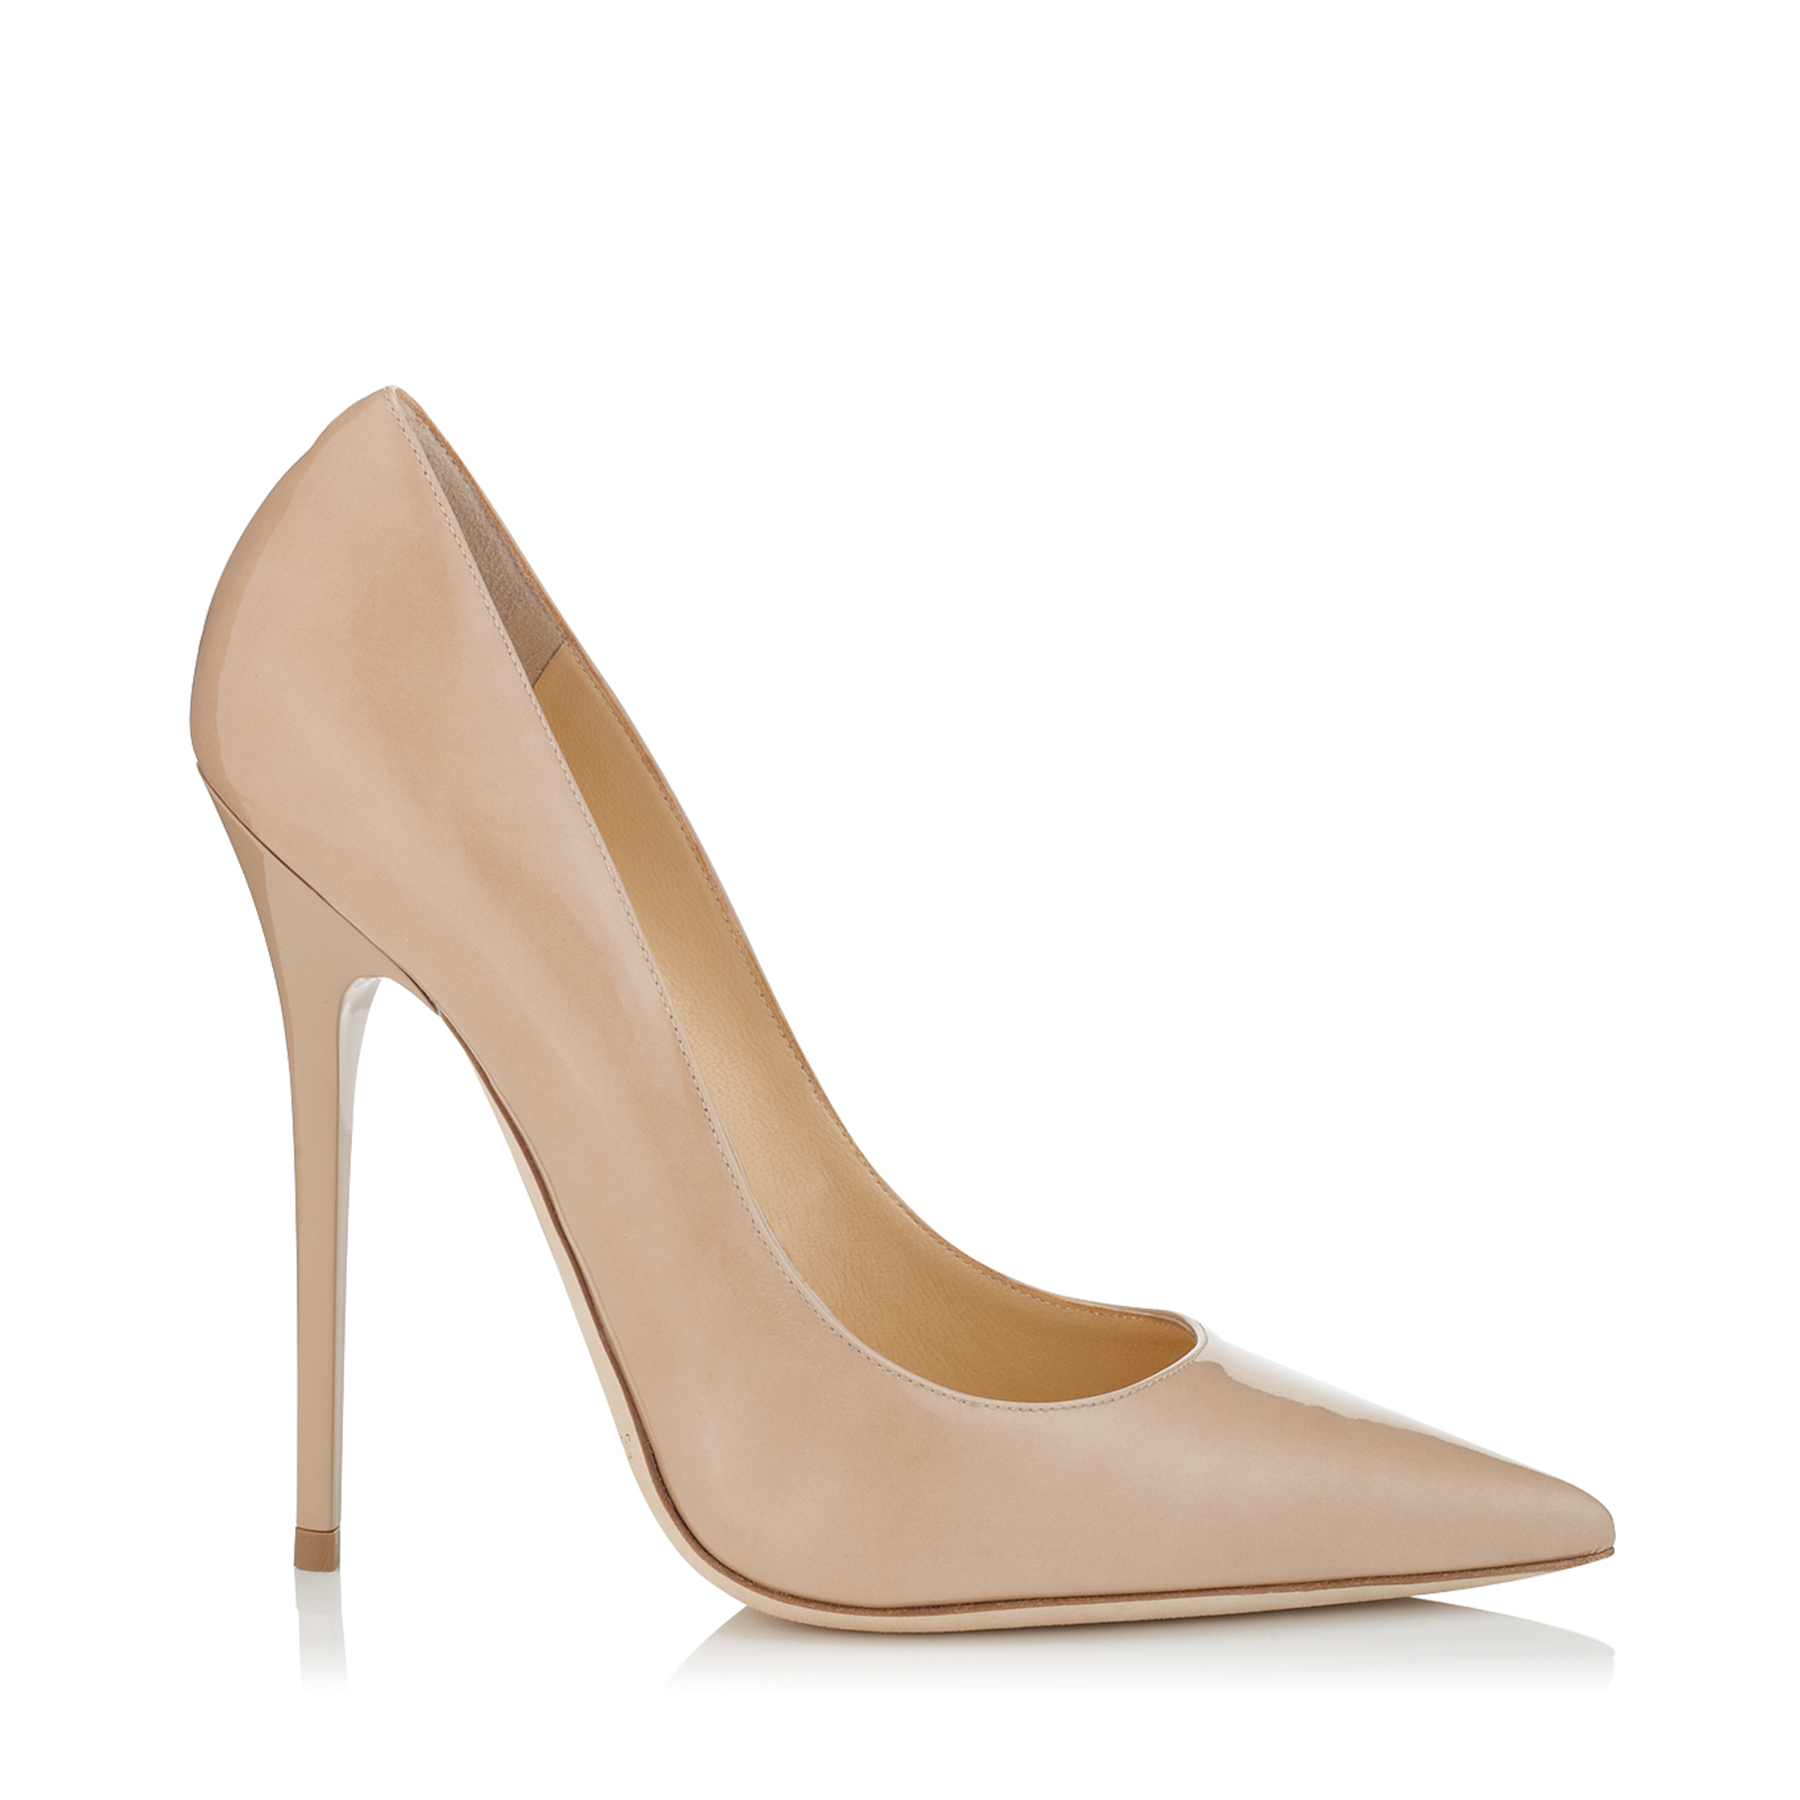 ANOUK Nude Patent Pointy Toe Stiletto Pumps by Jimmy Choo